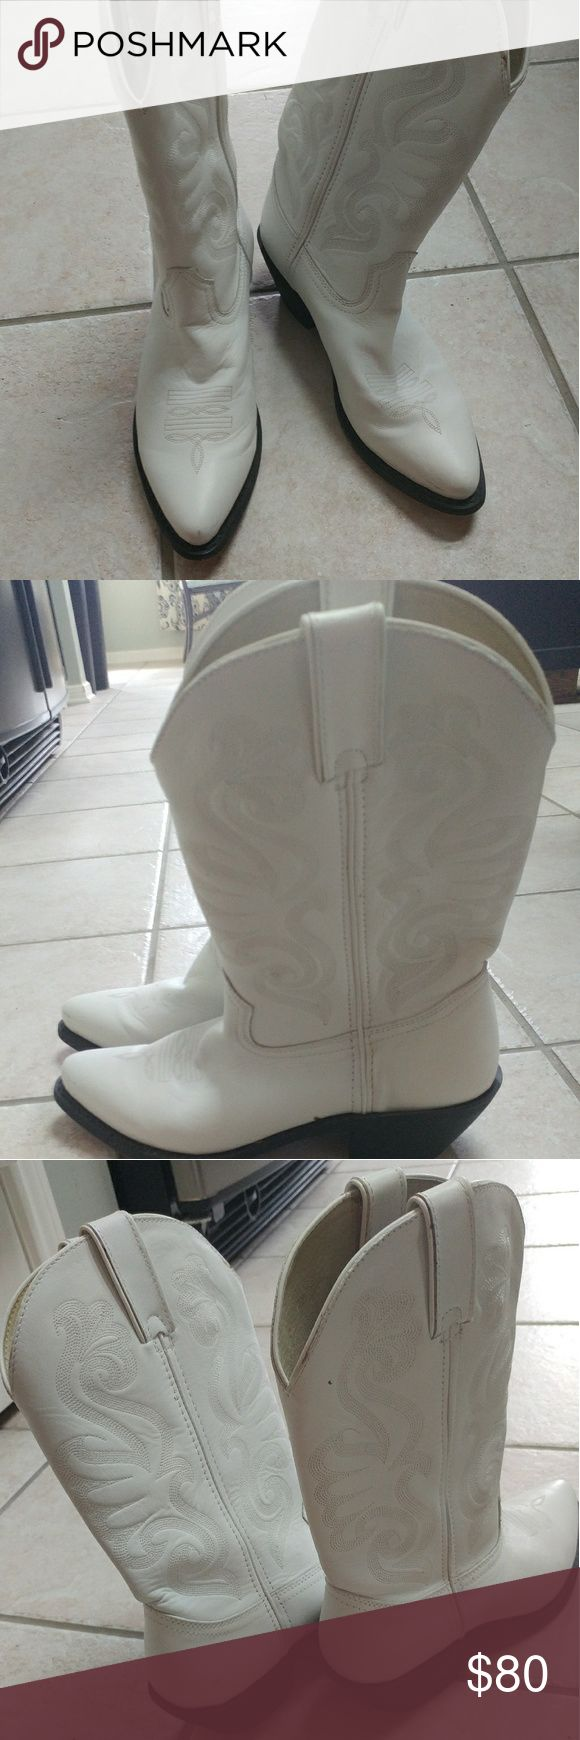 Durango white cowboy boots White cowboy boots, Durango brand. Some small scuffs on back which is pictured. Worn once. Durango Shoes